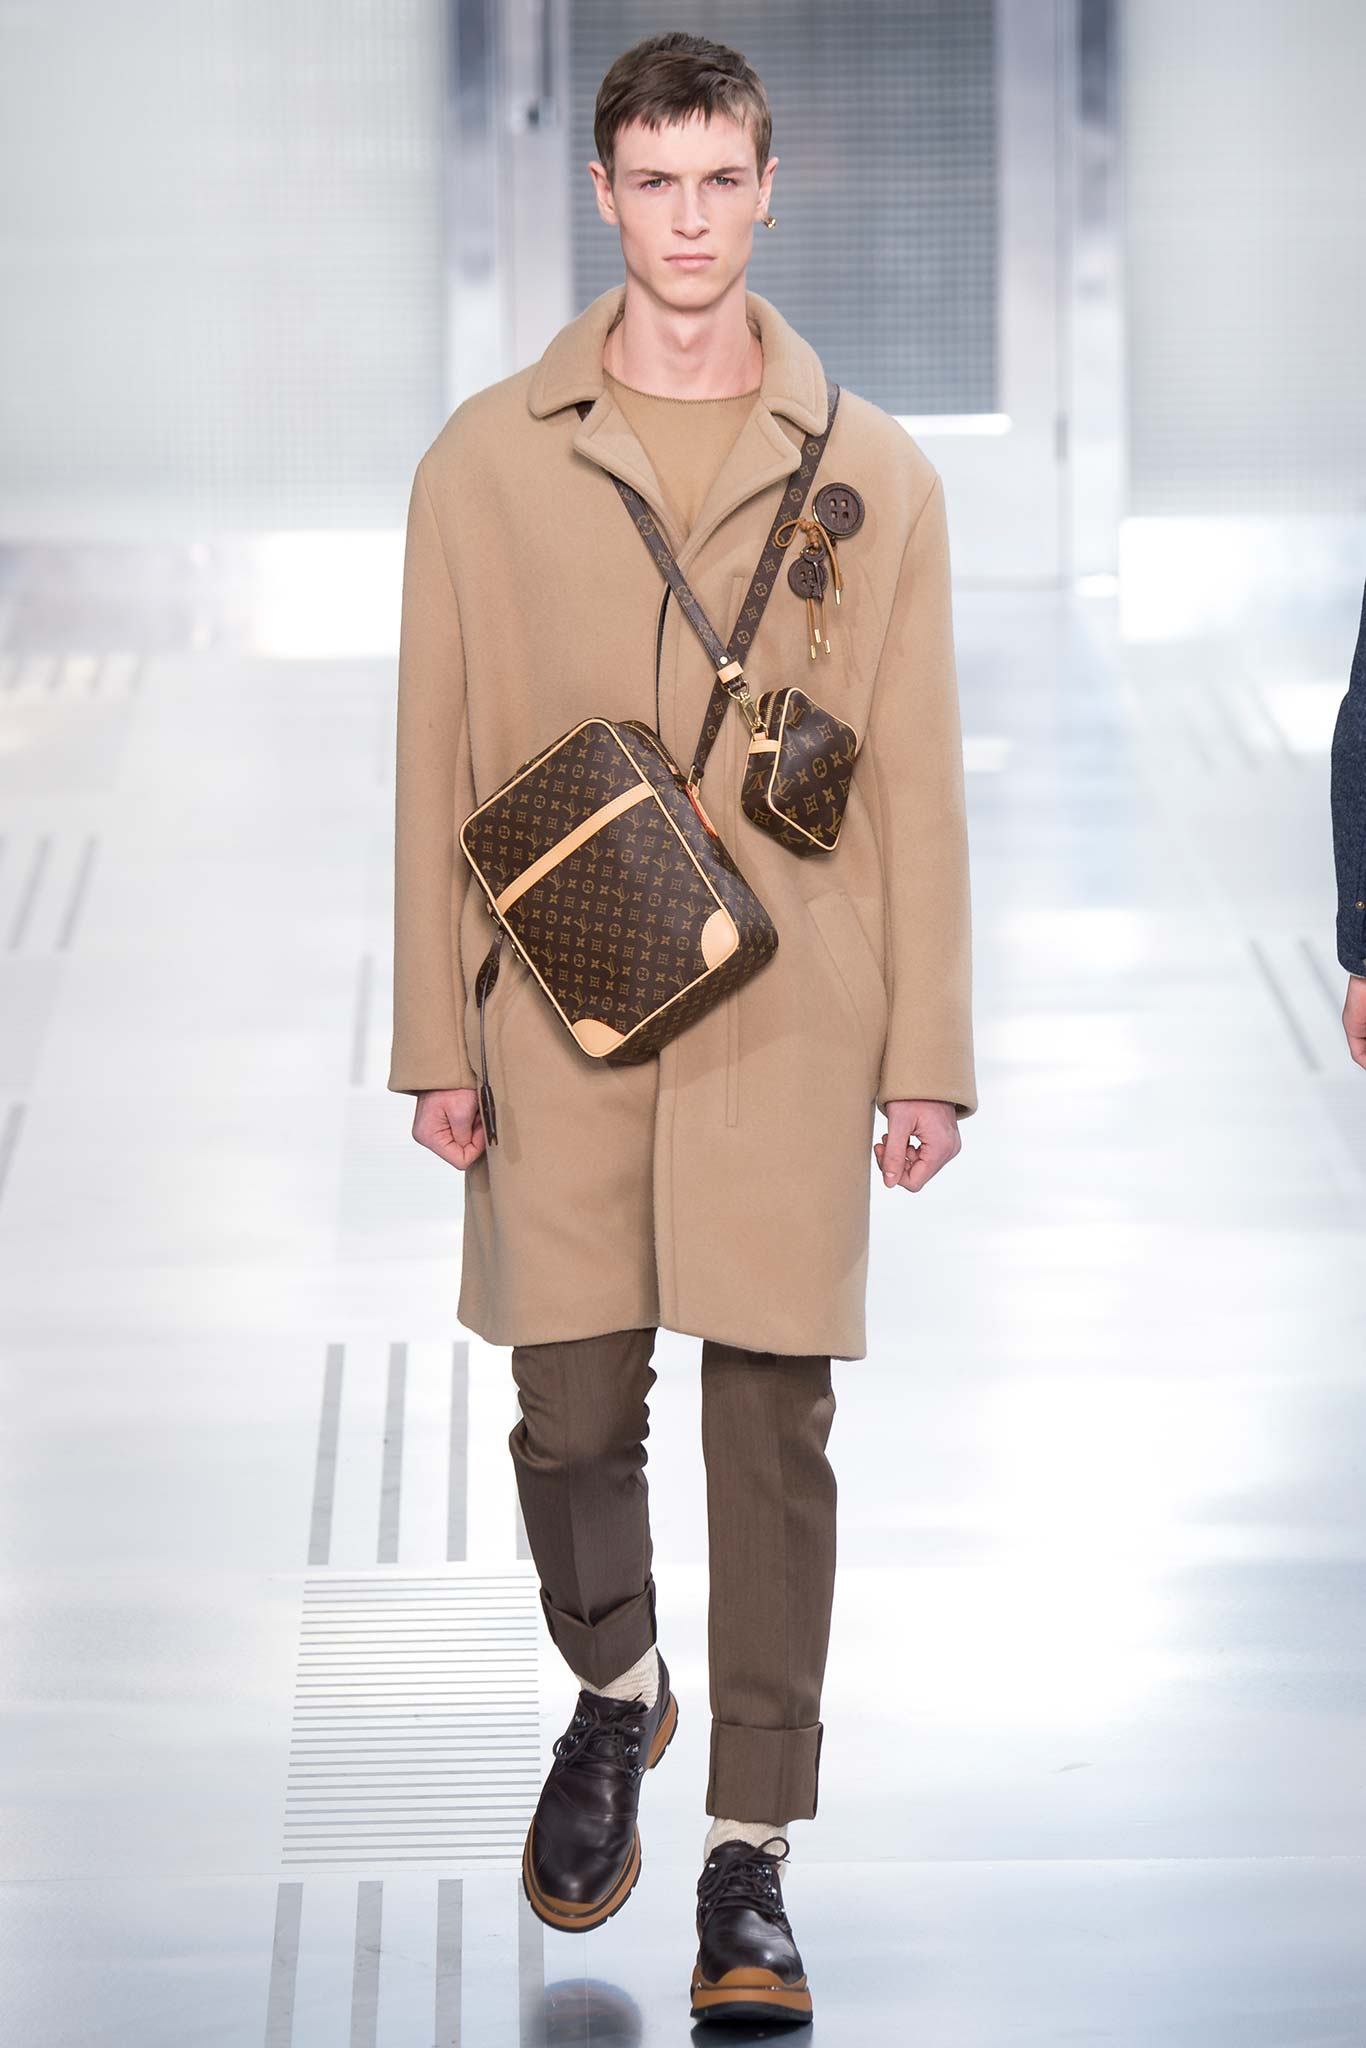 Louis Vuitton Menswear F/W 2015 Paris